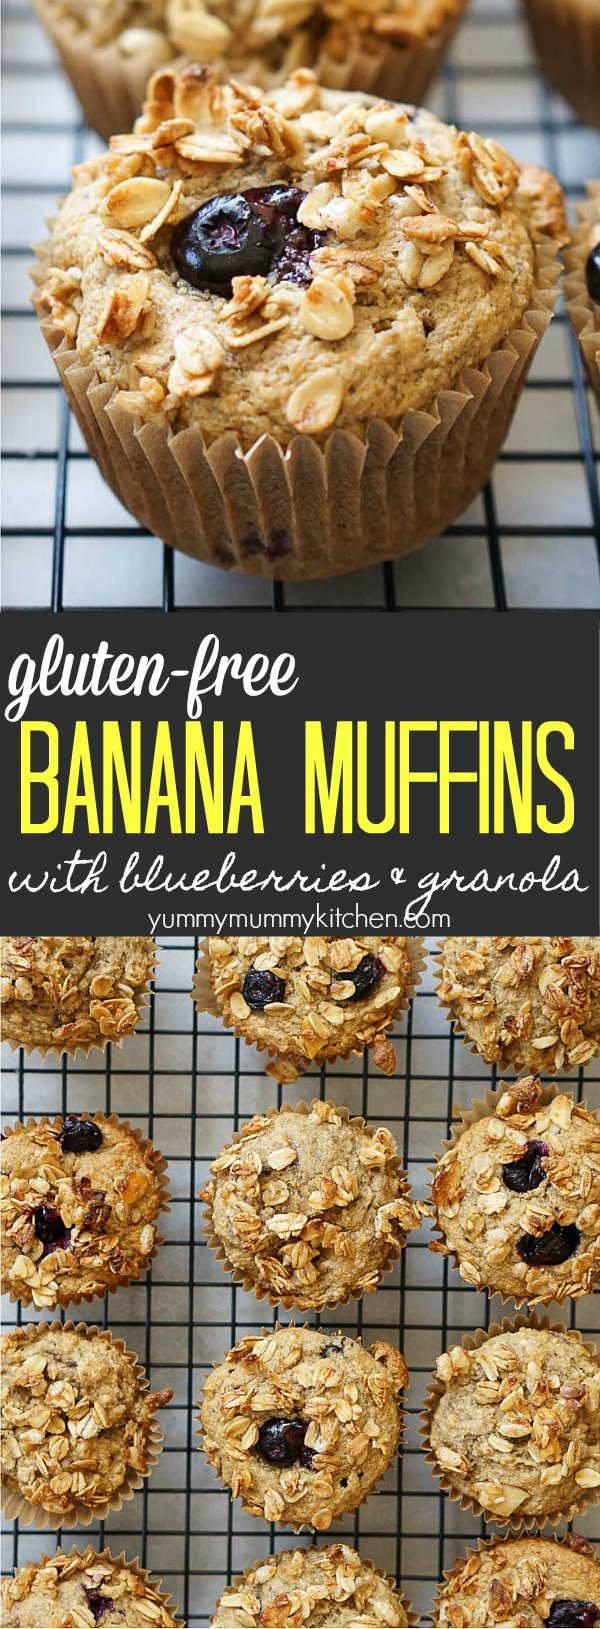 Gluten free vegan banana muffins made with healthy ingredients like oat flour, maple syrup, flax, and coconut oil. Add blueberries and top with granola for an extra delicious breakfast.